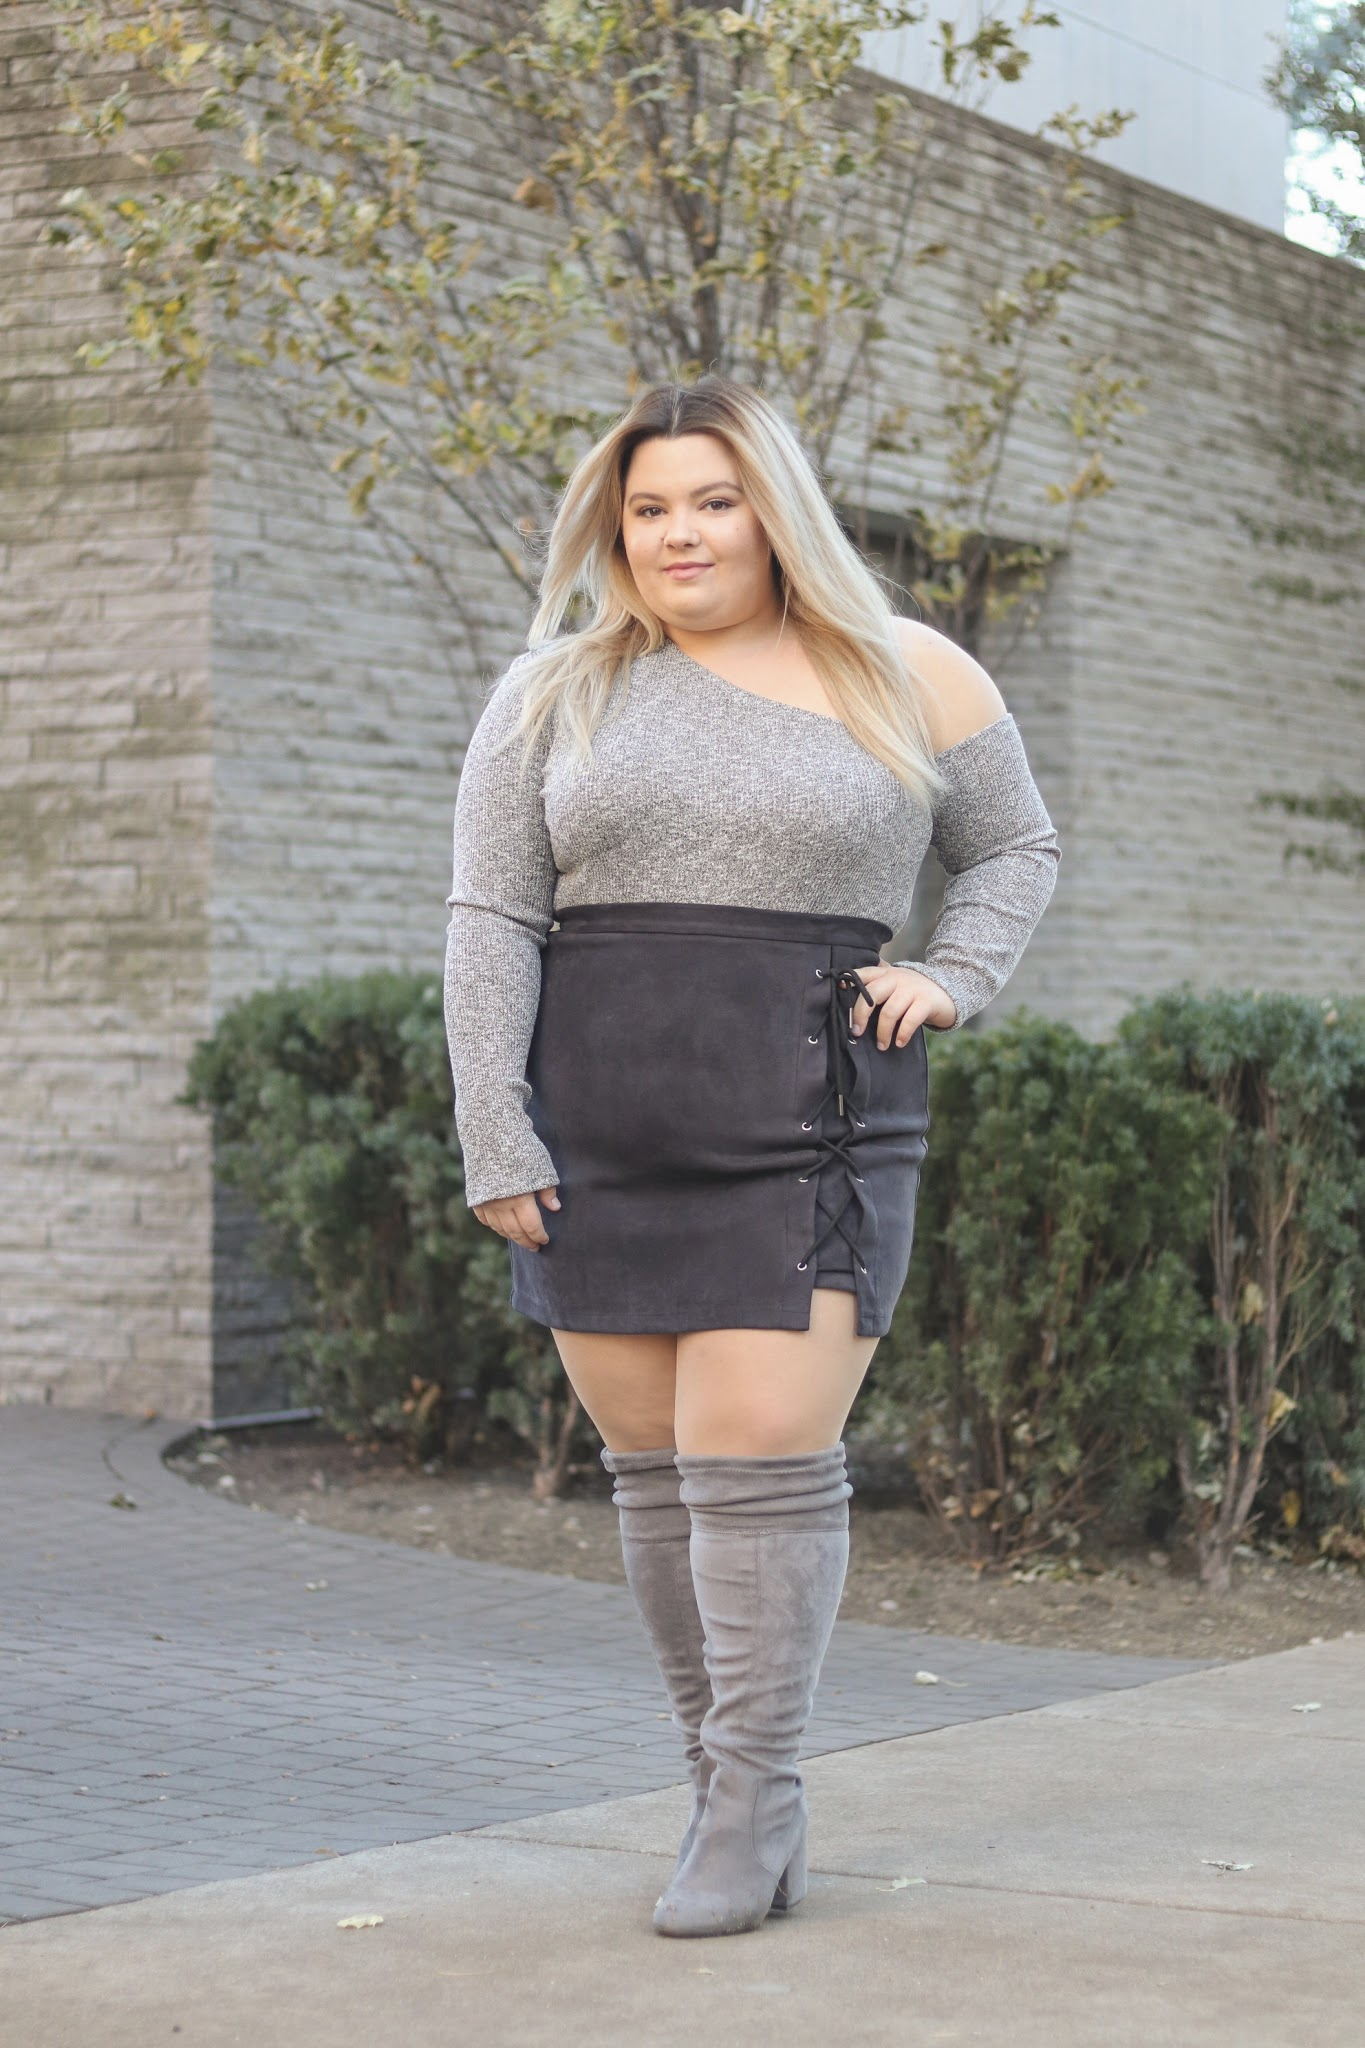 Chicago Plus Size Fashion Blogger Natalie Craig reviews gray suede over the knee boots.